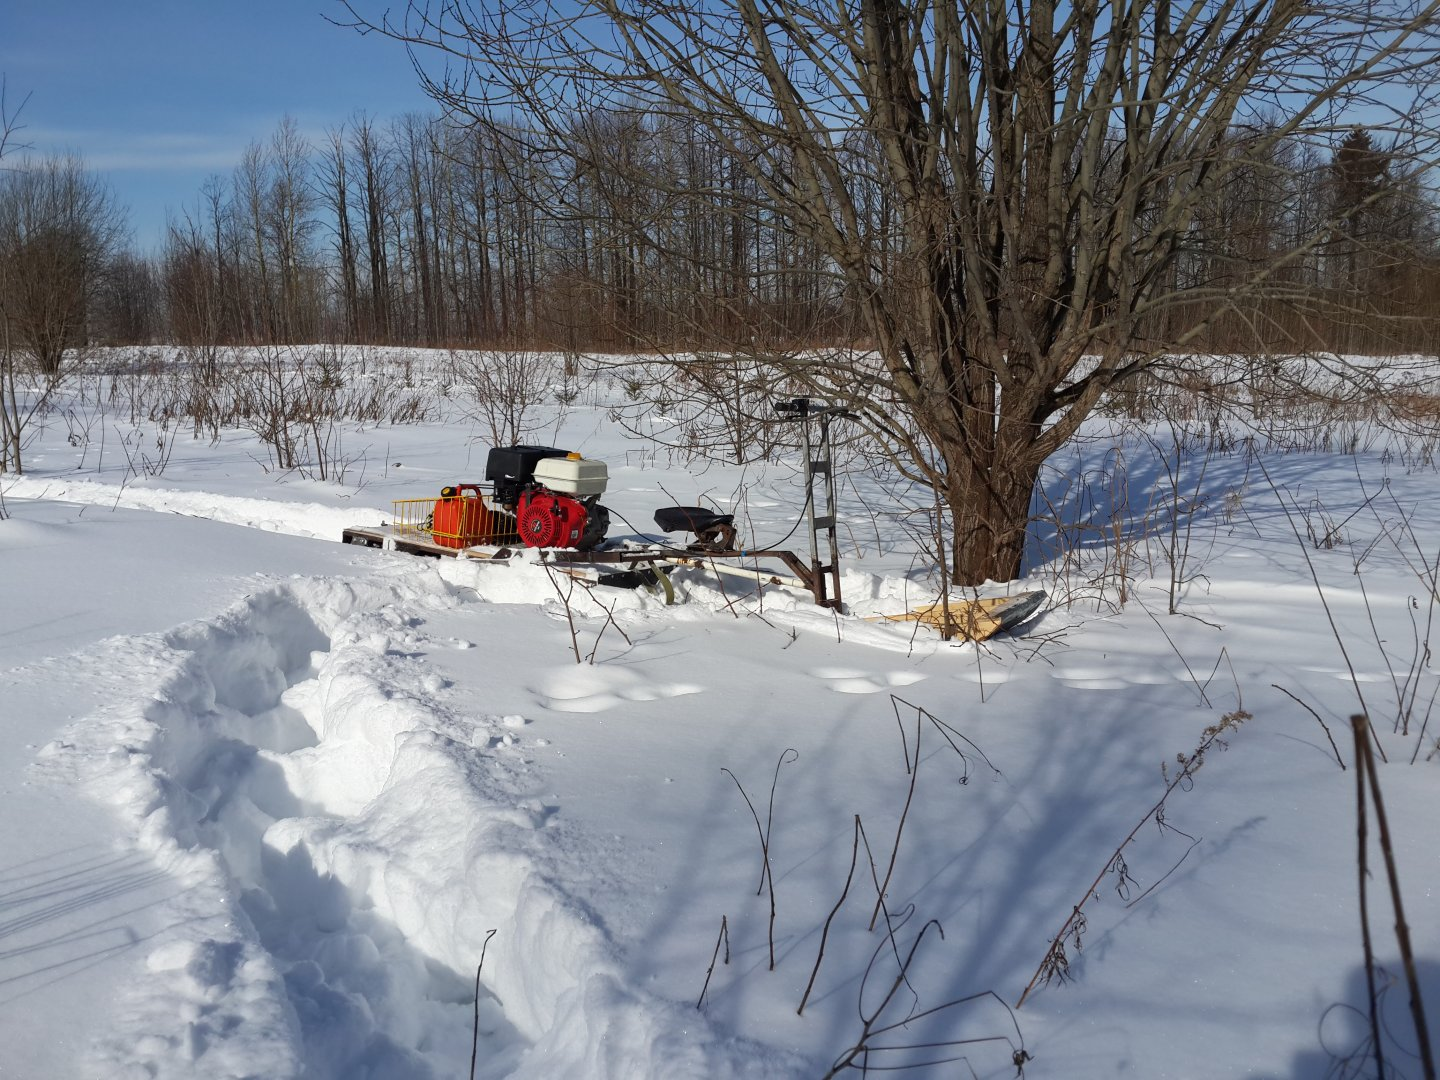 http://www.snowmobile.ru/forum/index.php?attachments/1235360/